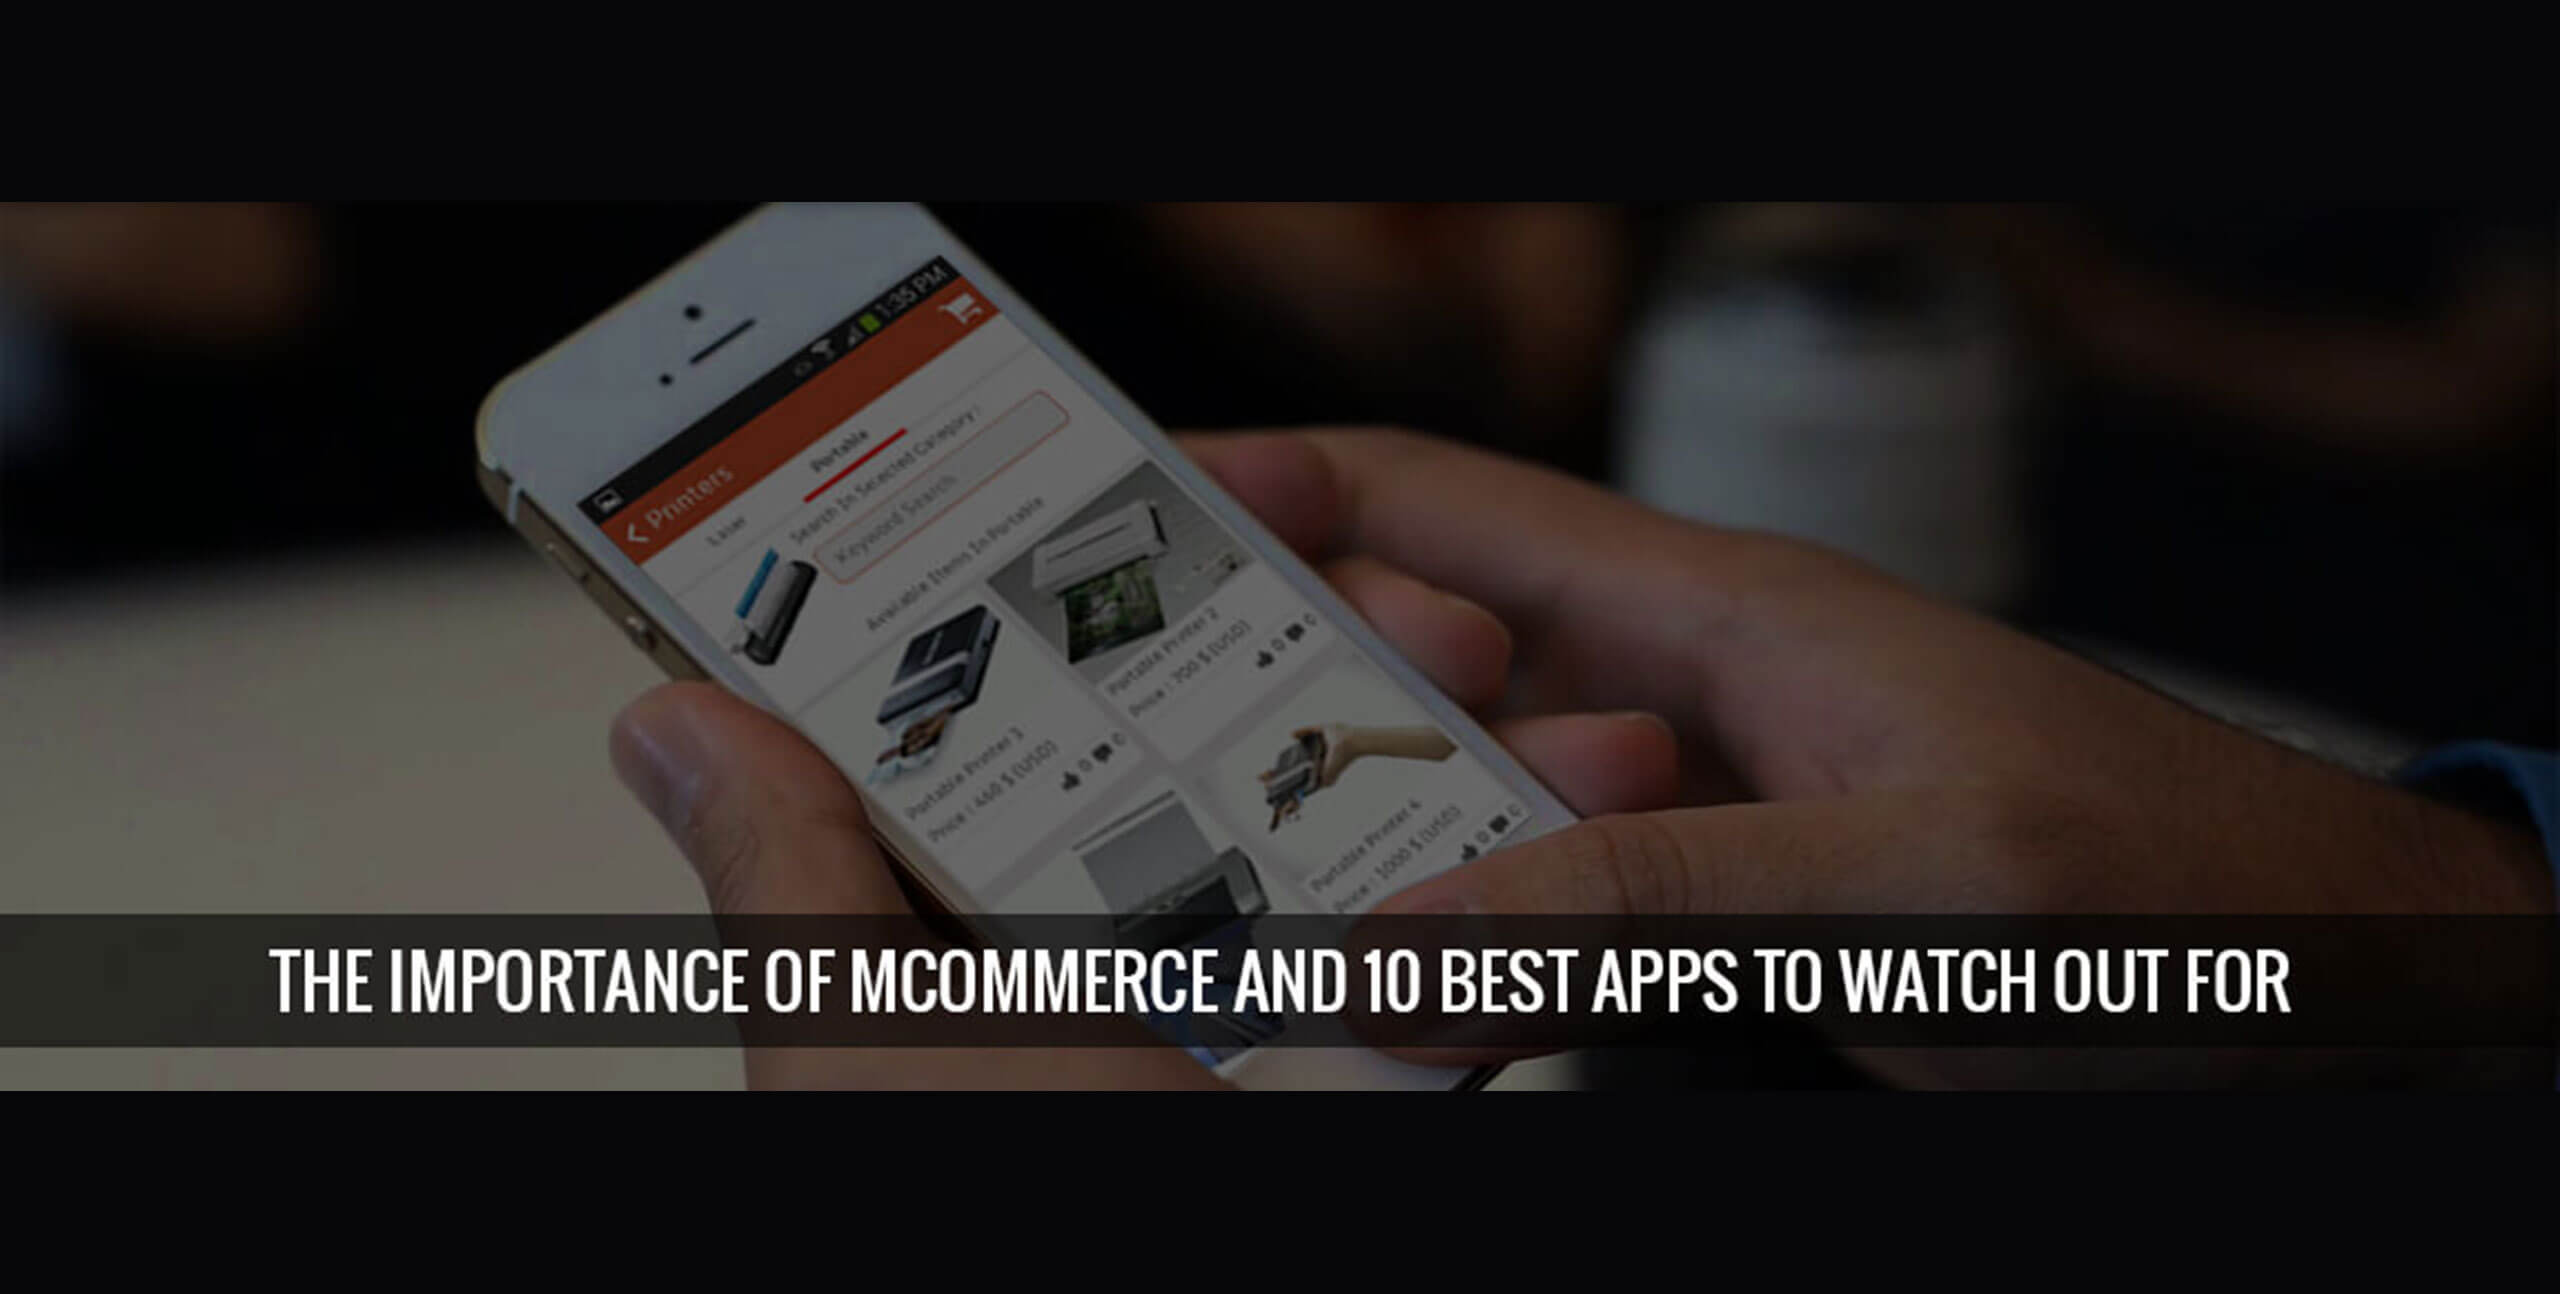 The Importance of mCommerce and Best Apps to Watch Out For